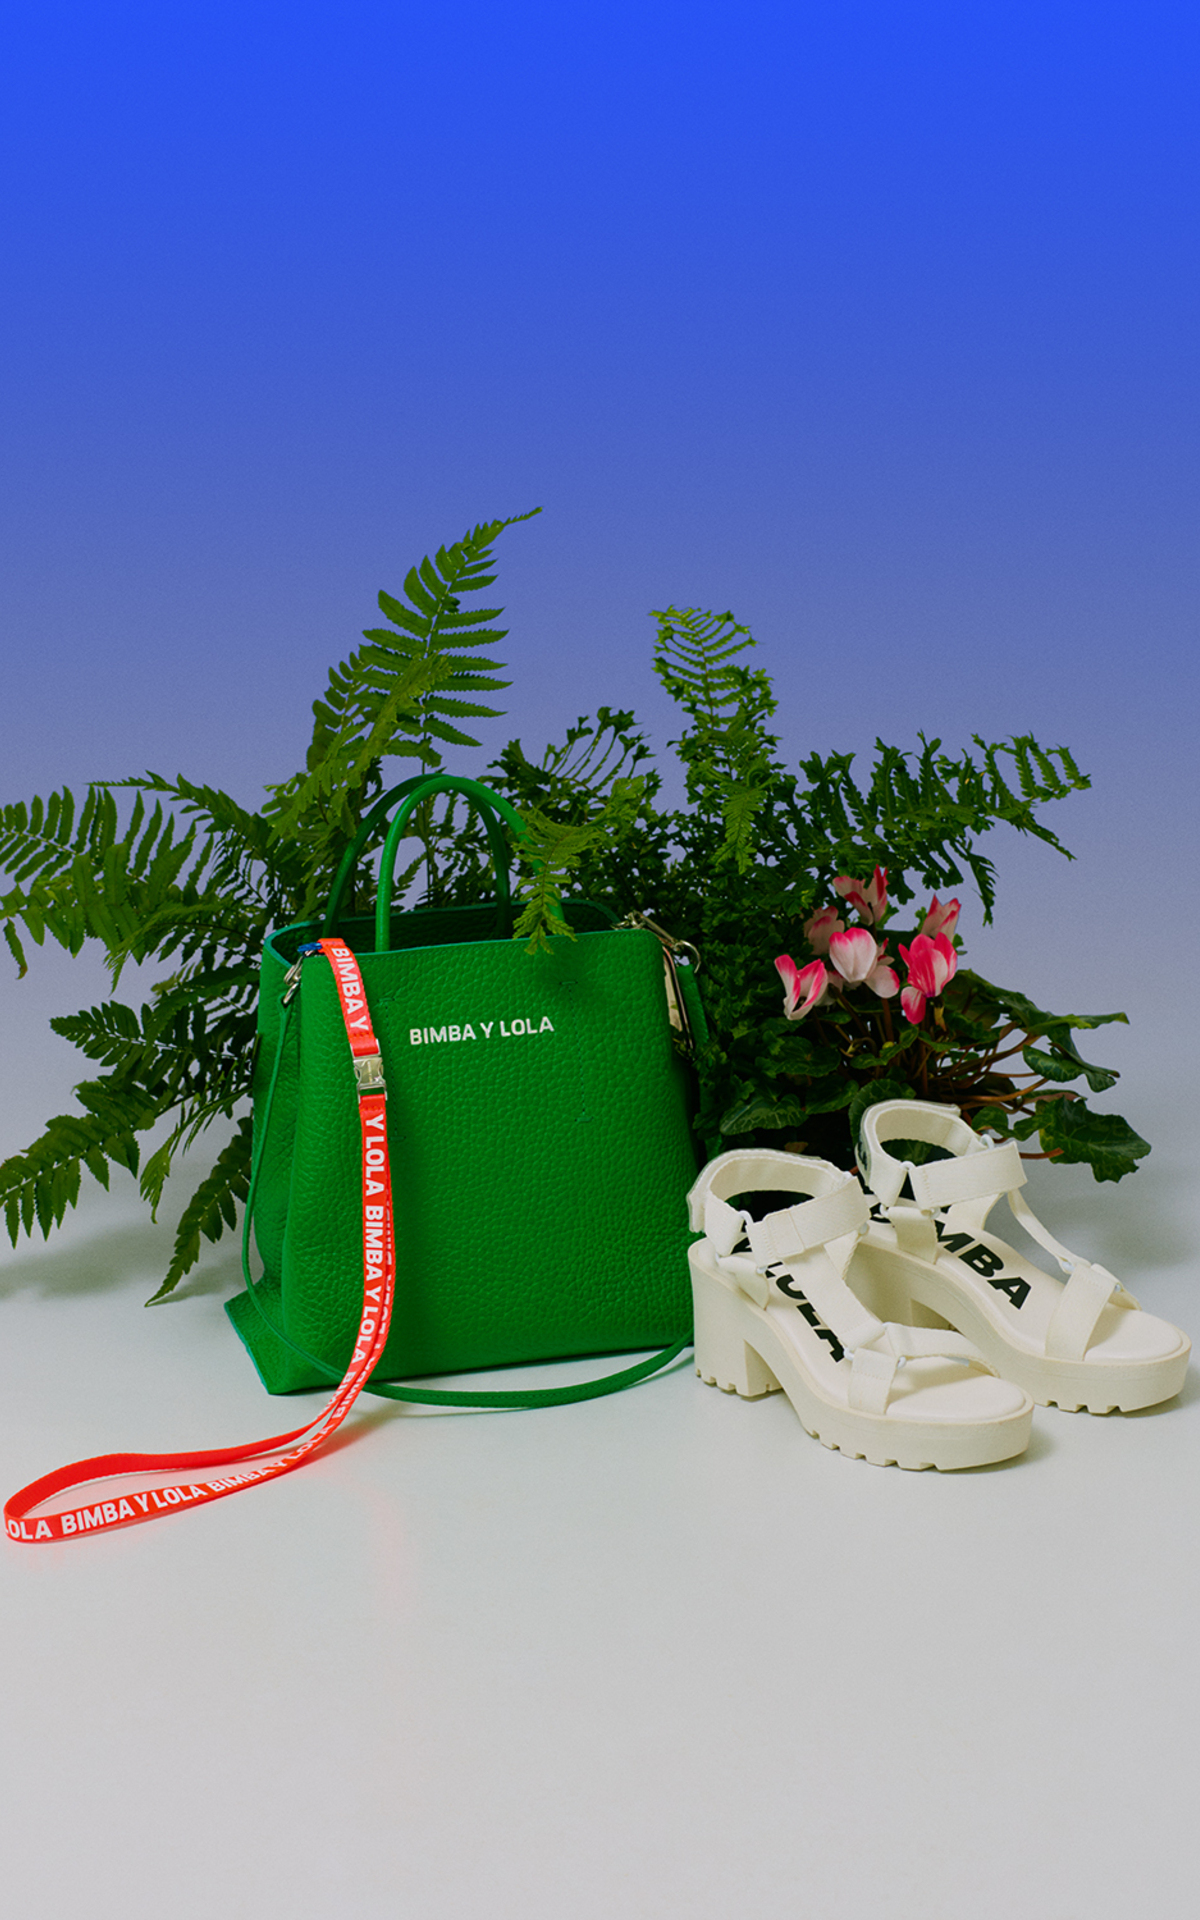 Green bag and white sandals with a background with plants Bimba y Lola